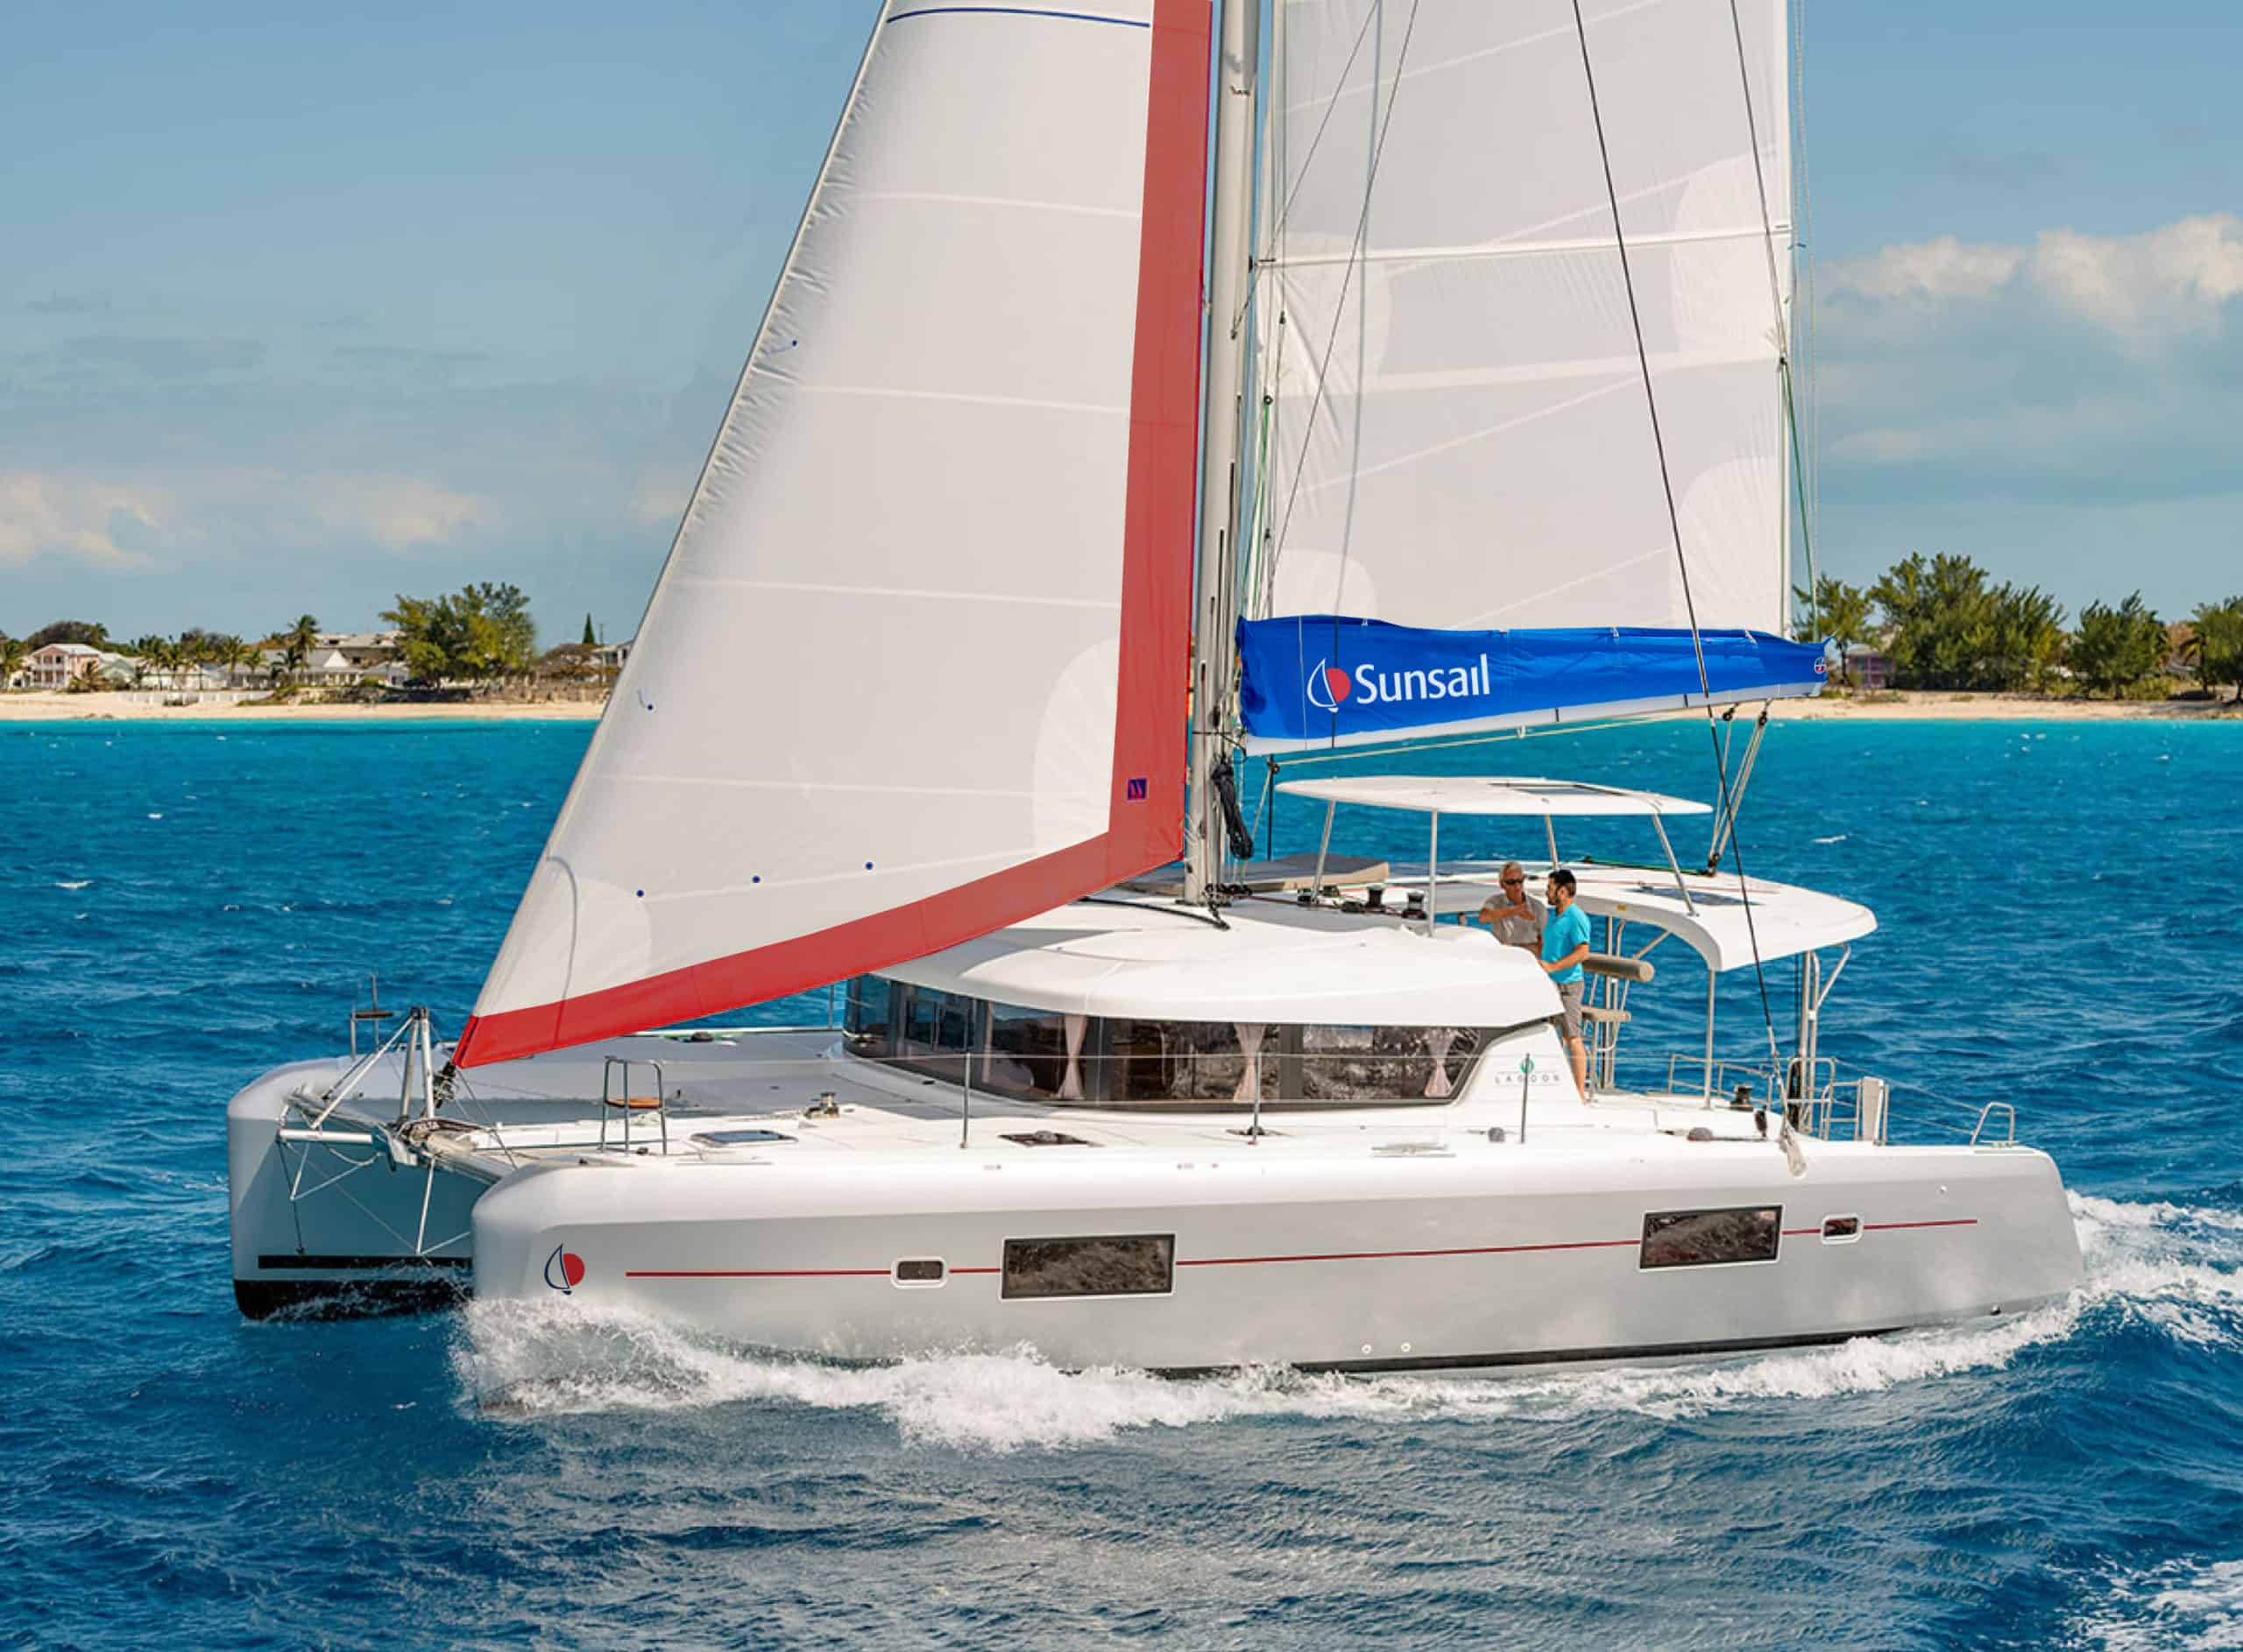 sunsail424-exterior1-rebranded-scaled